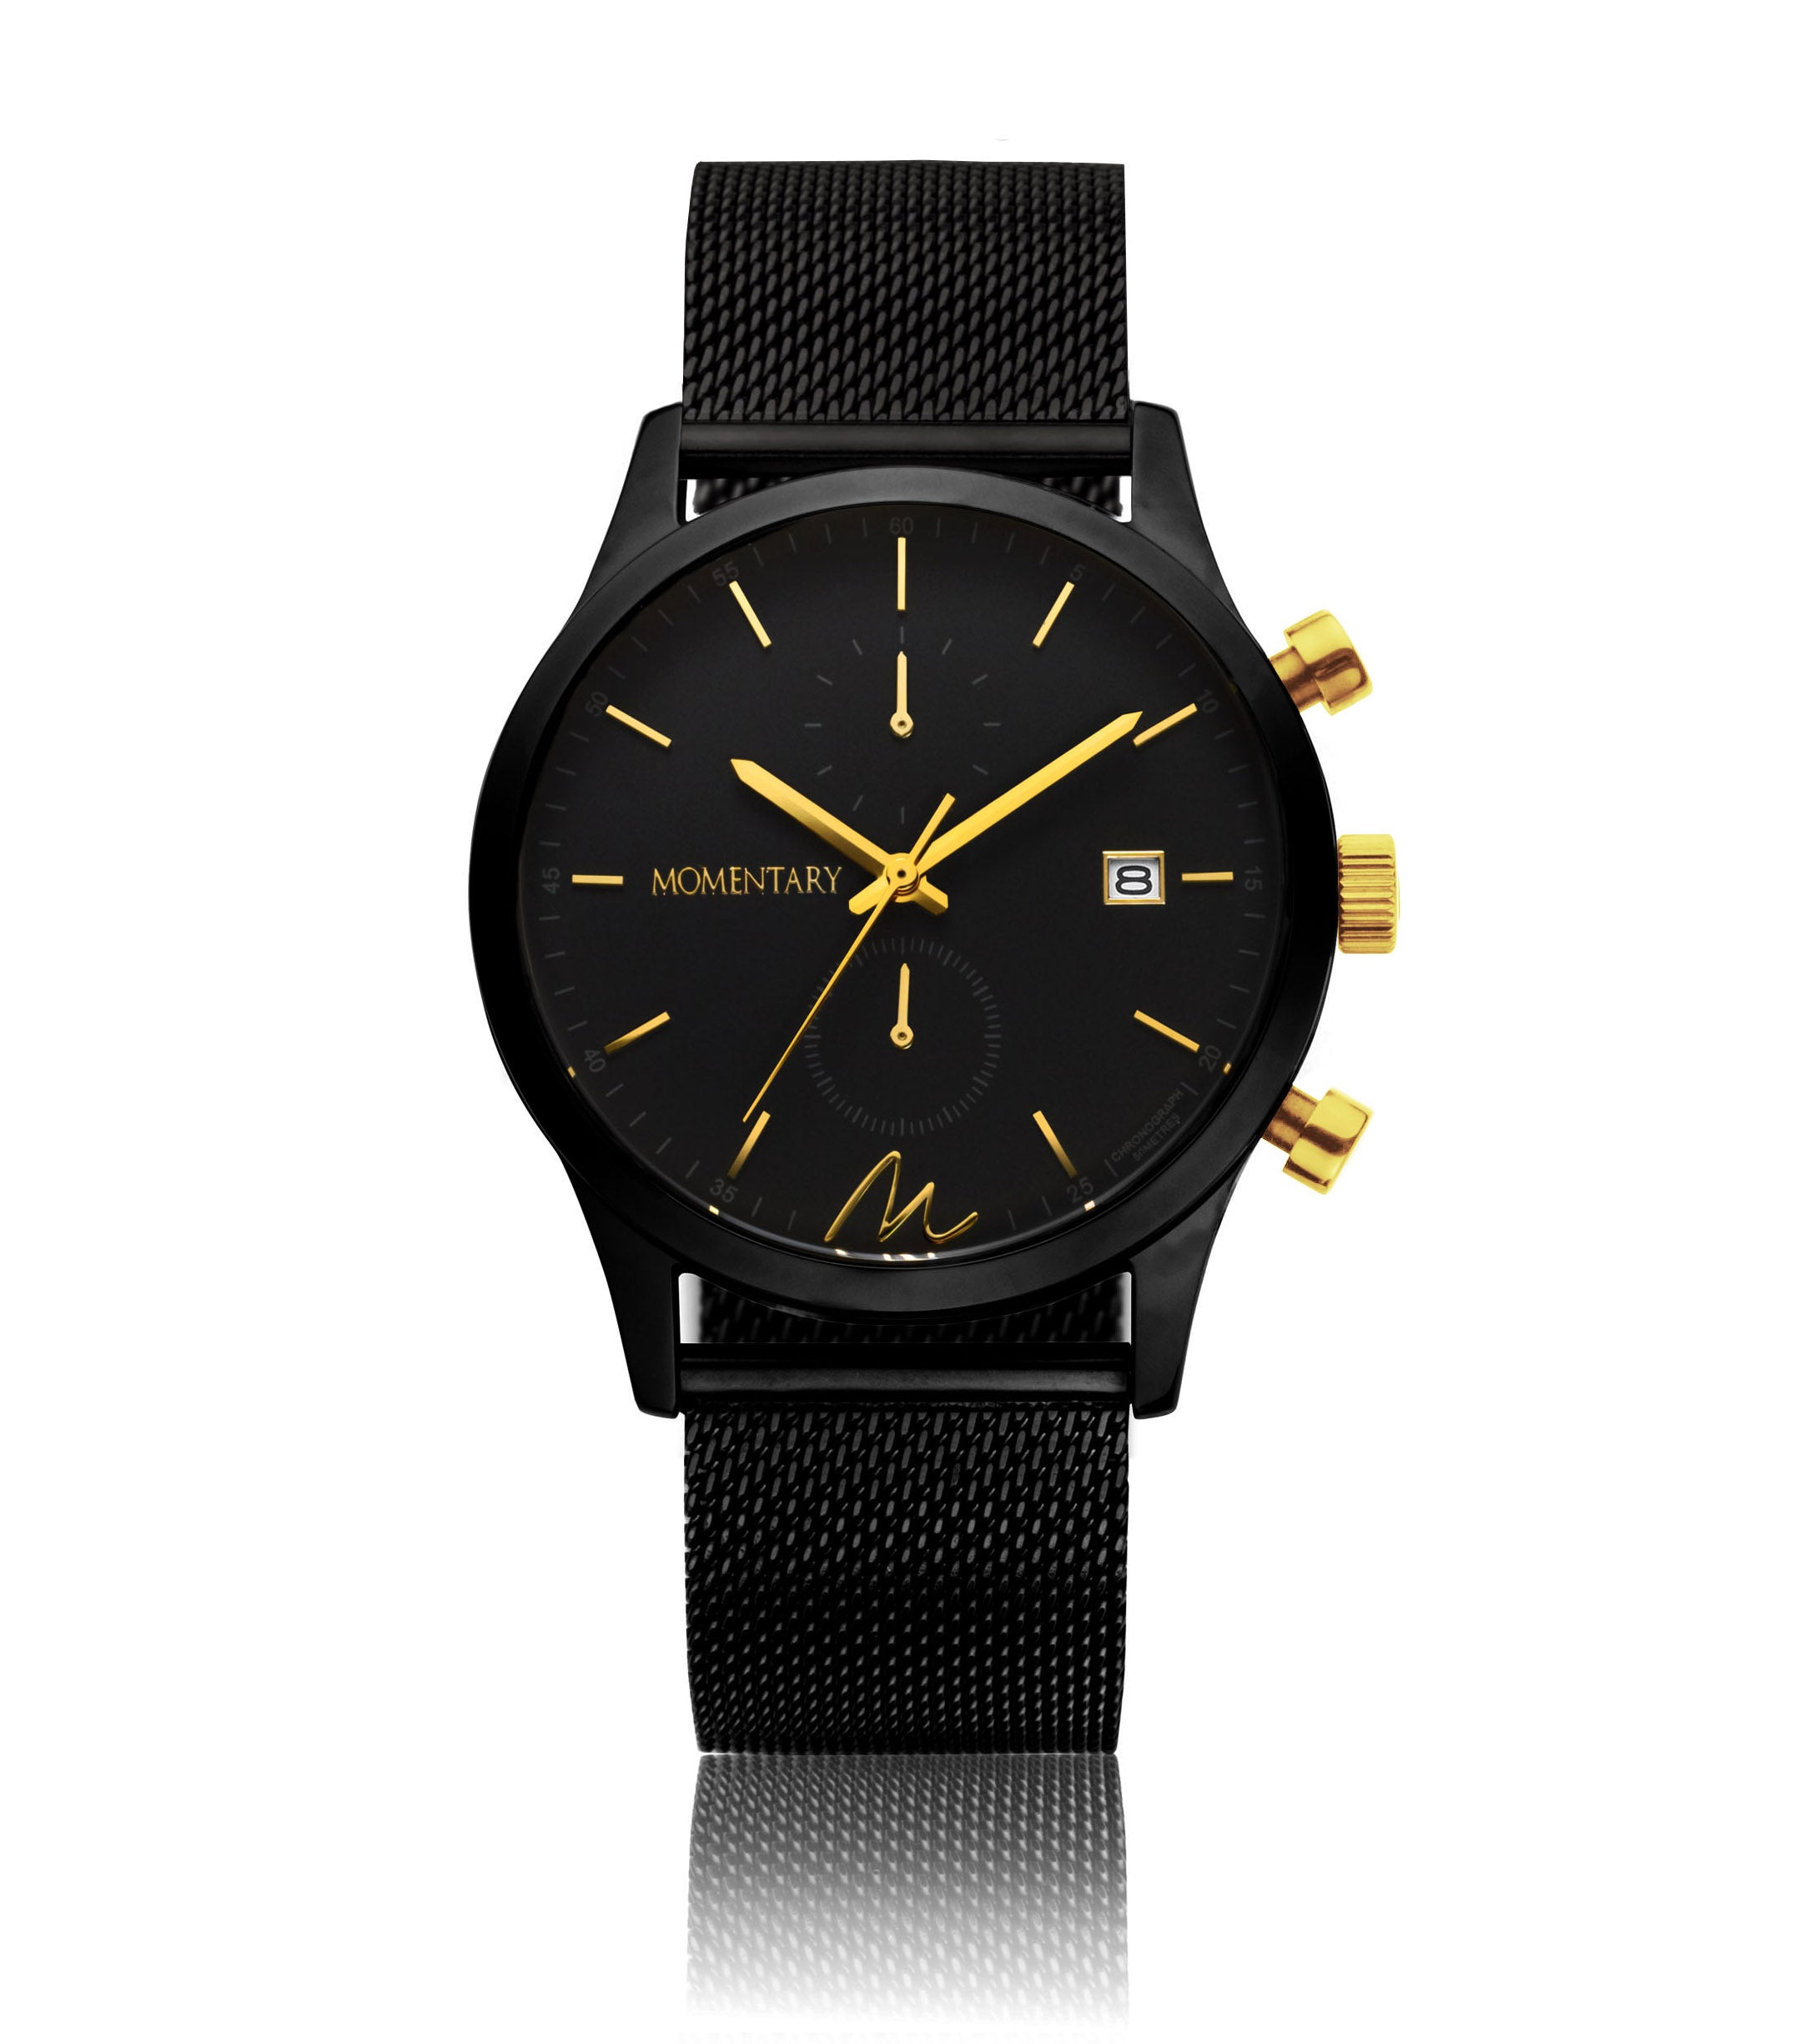 famous and designs for are design elegant their obstructive non scandinavian pin watches danish simple